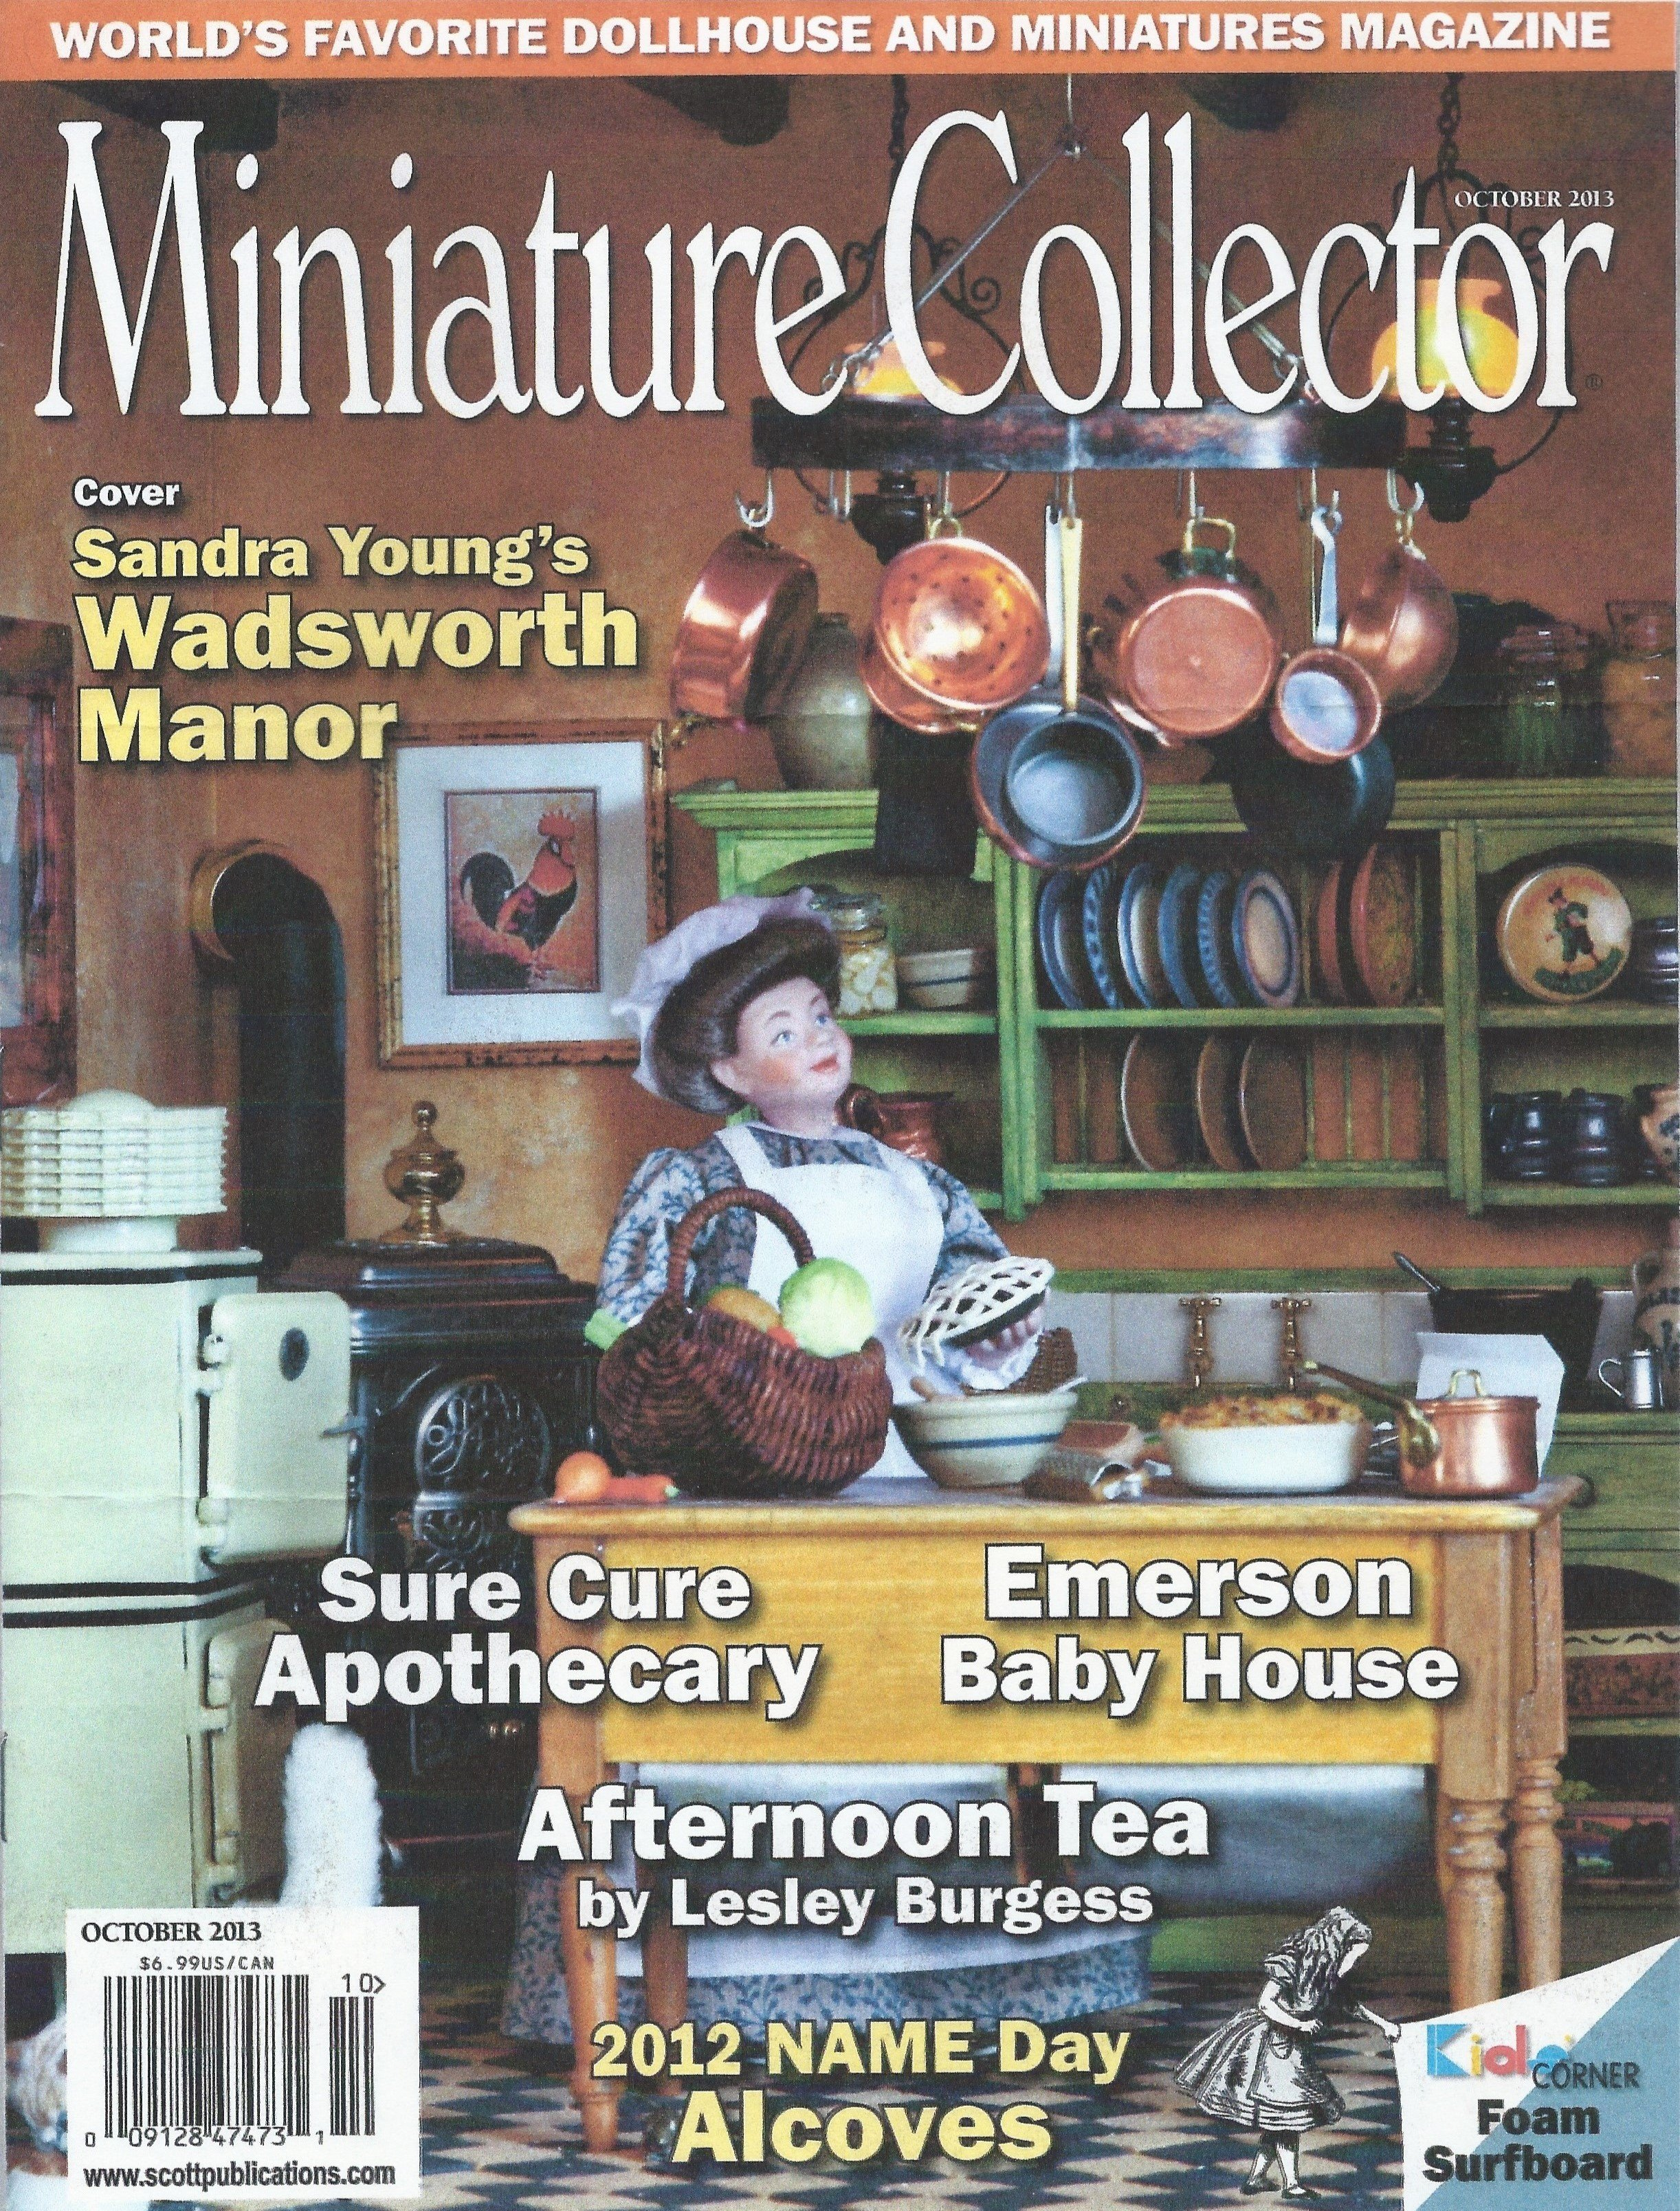 October 2013 Miniature Collector Magazine featuring Sandra Young's Wadsworth Manor